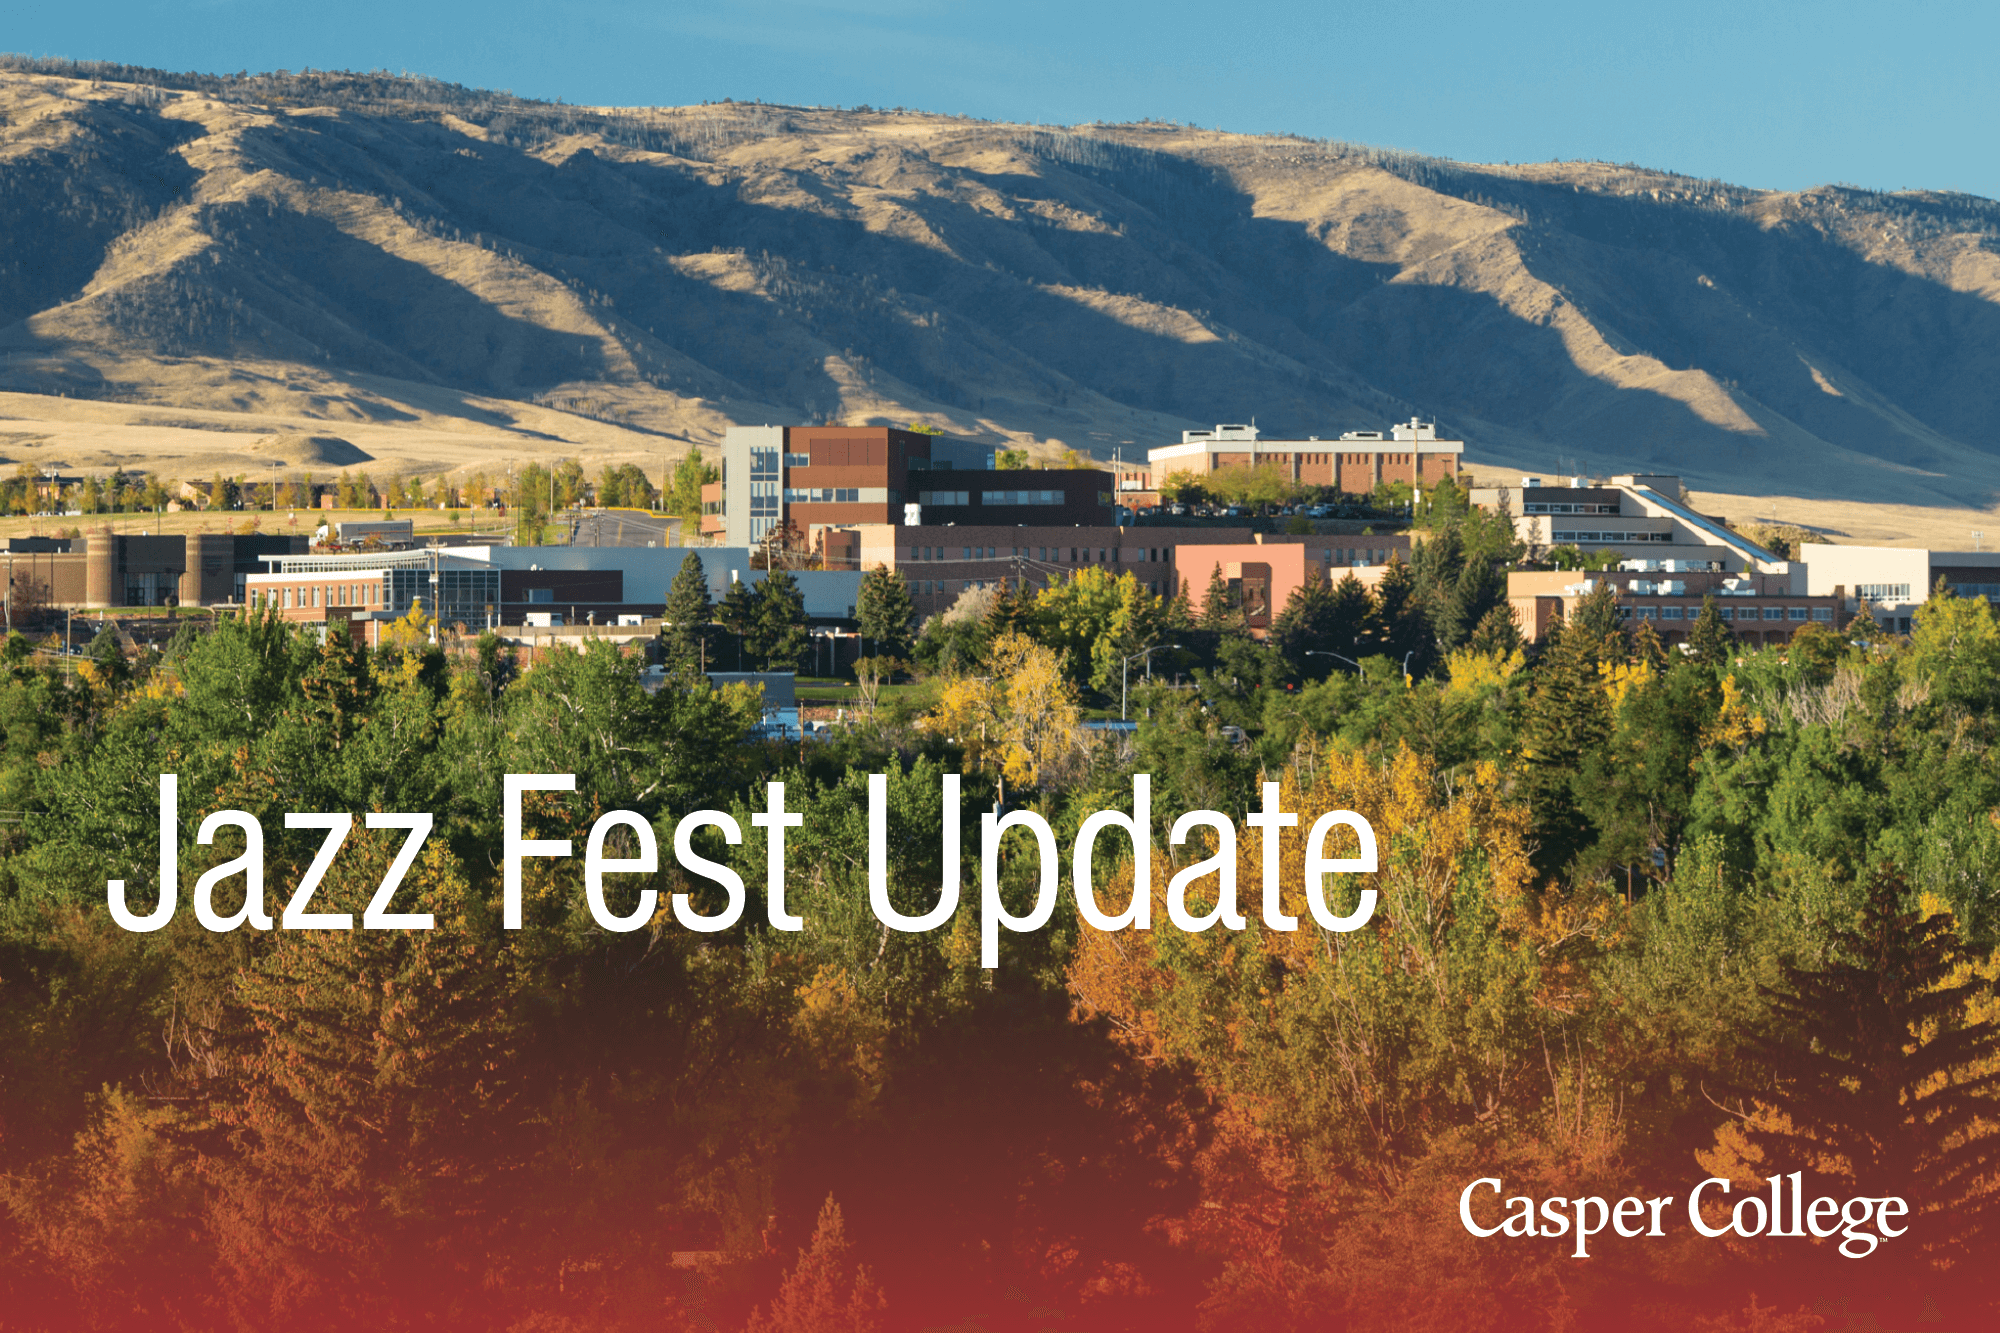 Photograph of Casper College campus with the words: Jazz Fest Update.